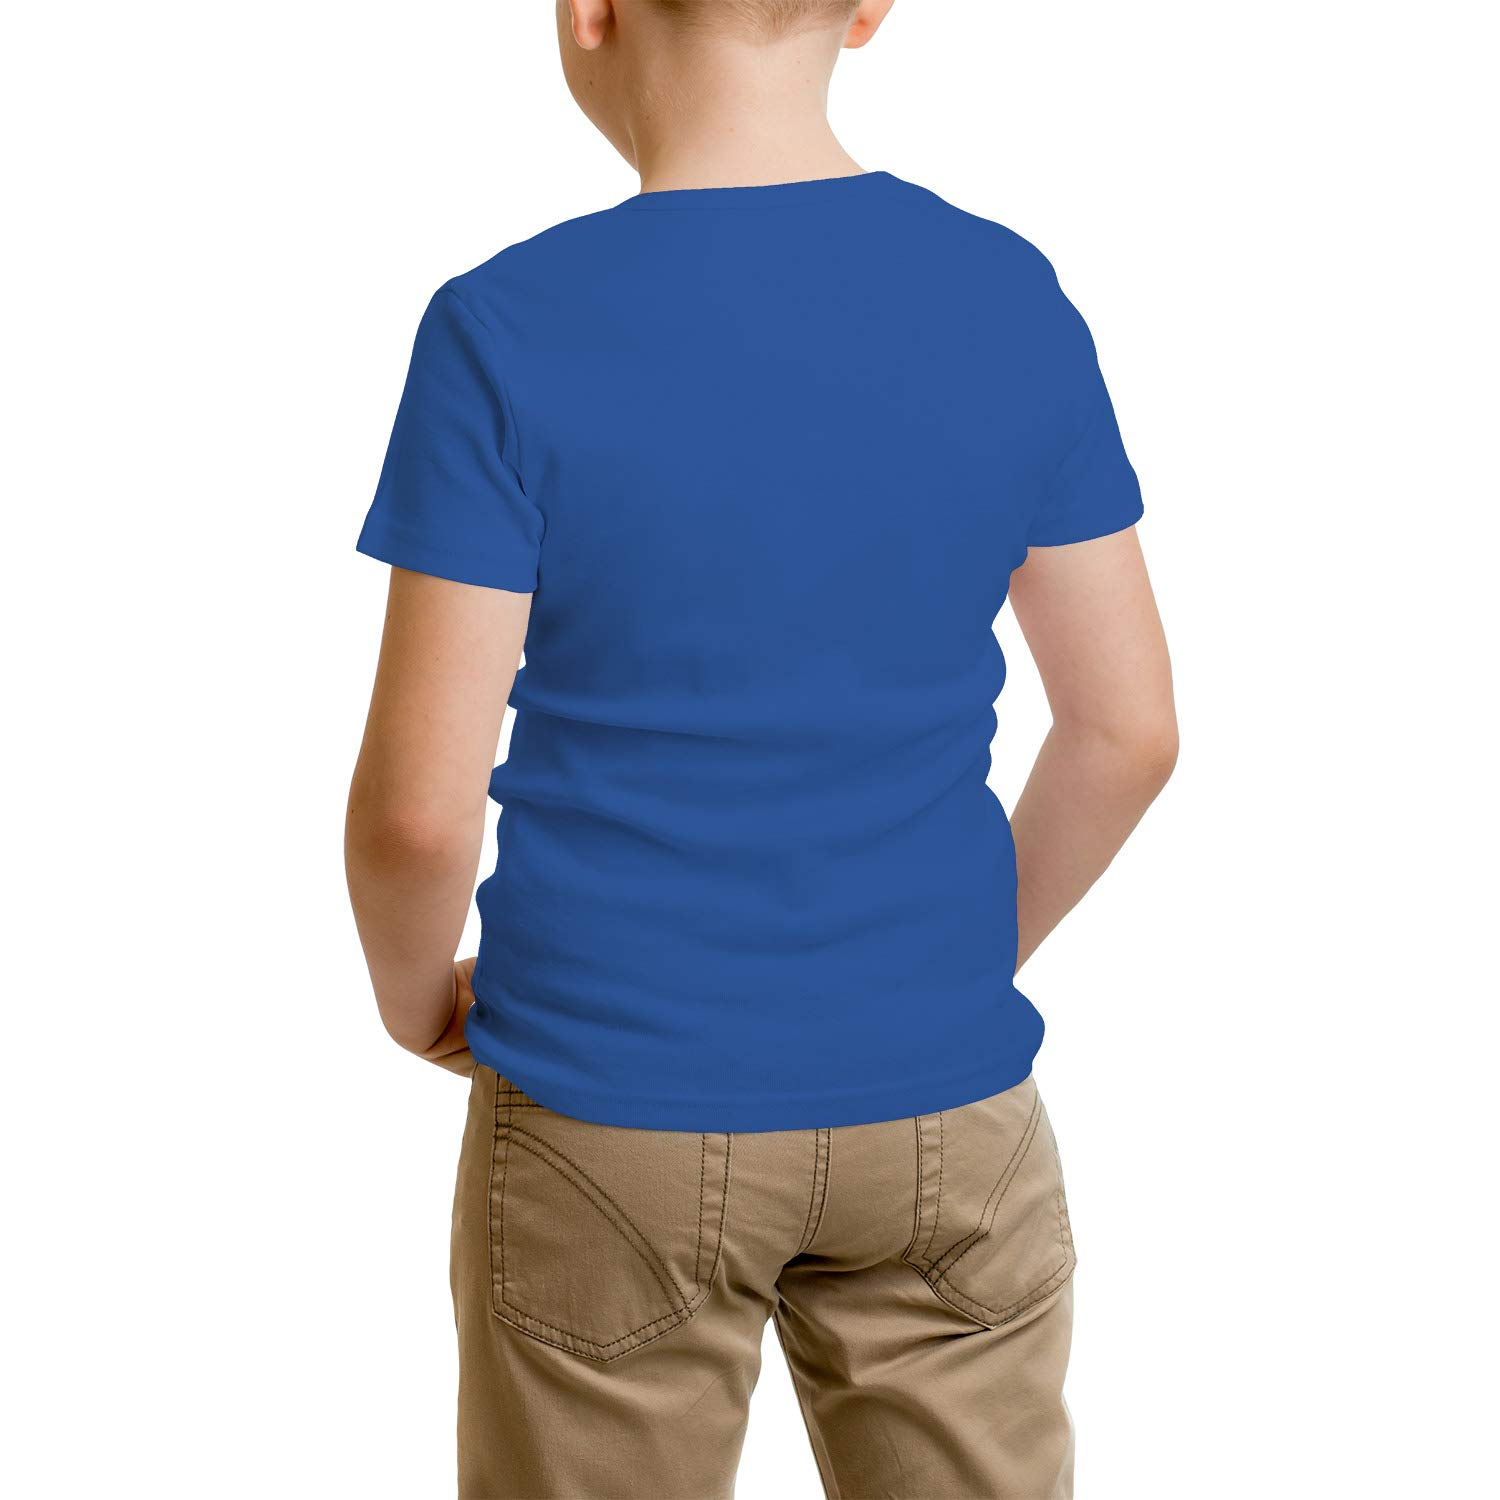 absolutemi Walking The Dog Cottont-Shirt Slim-Fit forBoys Shirts Laconic Parttern